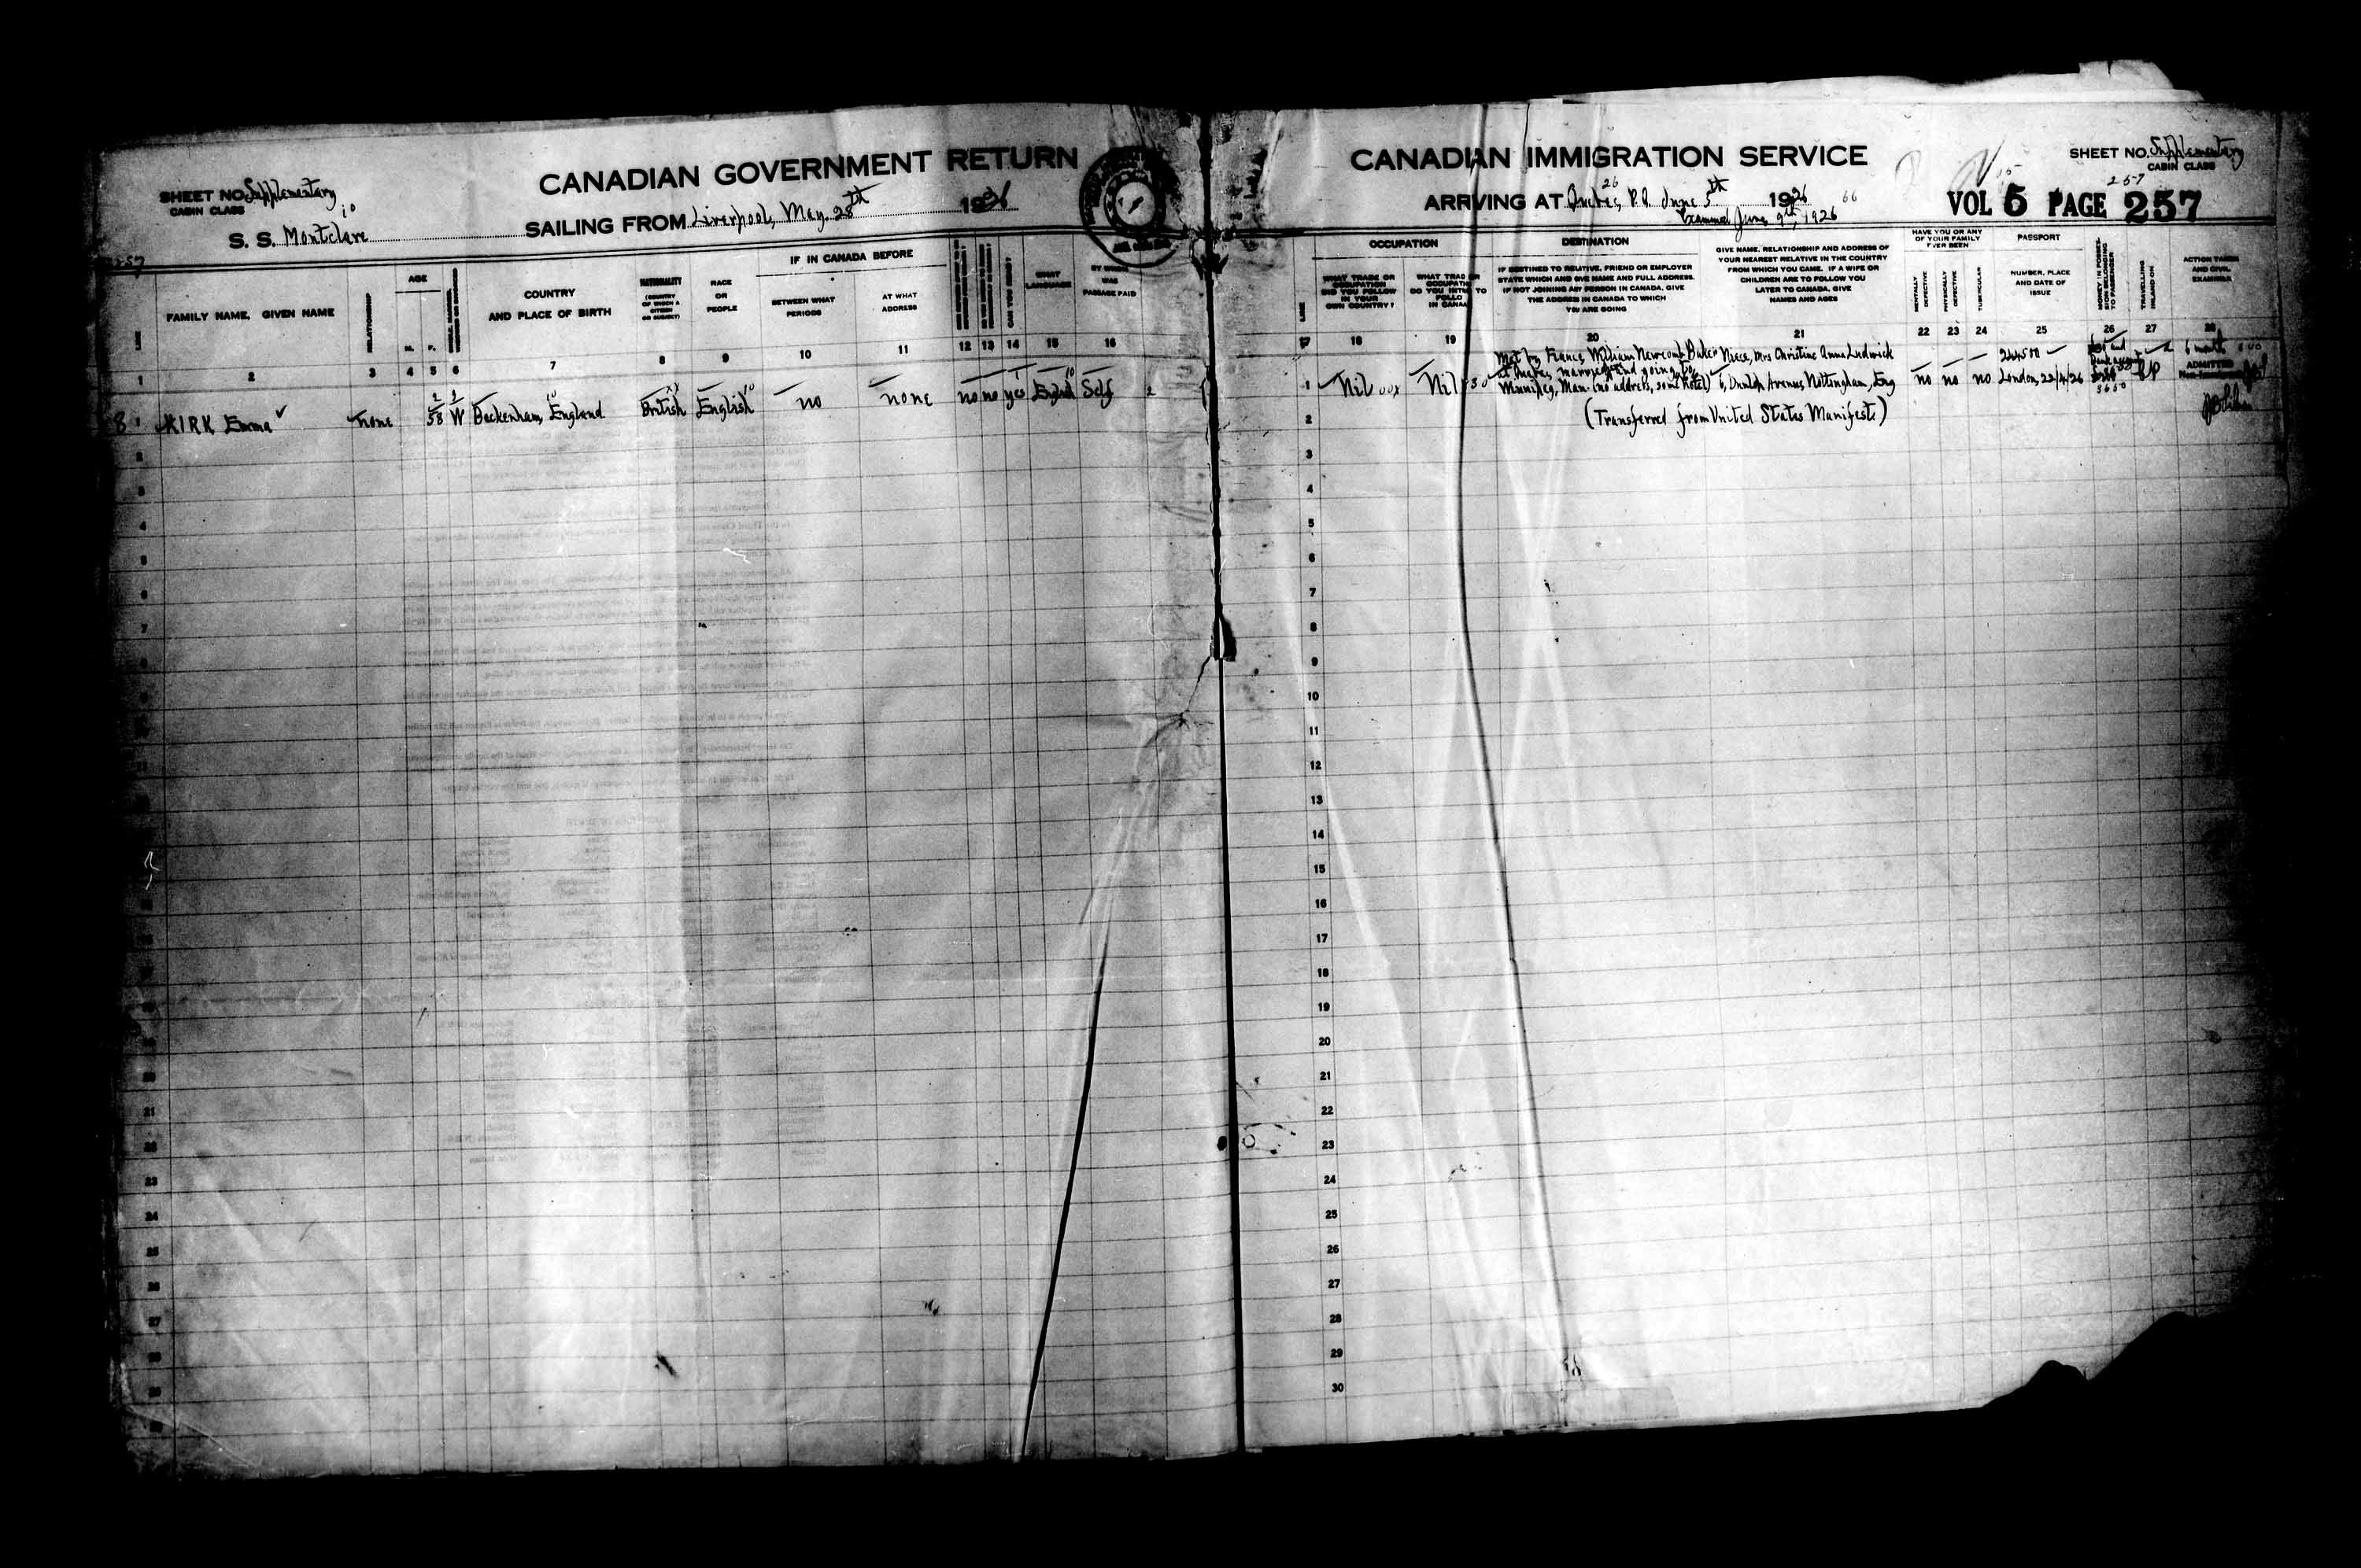 Title: Passenger Lists: Quebec City (1925-1935) - Mikan Number: 134839 - Microform: t-14722